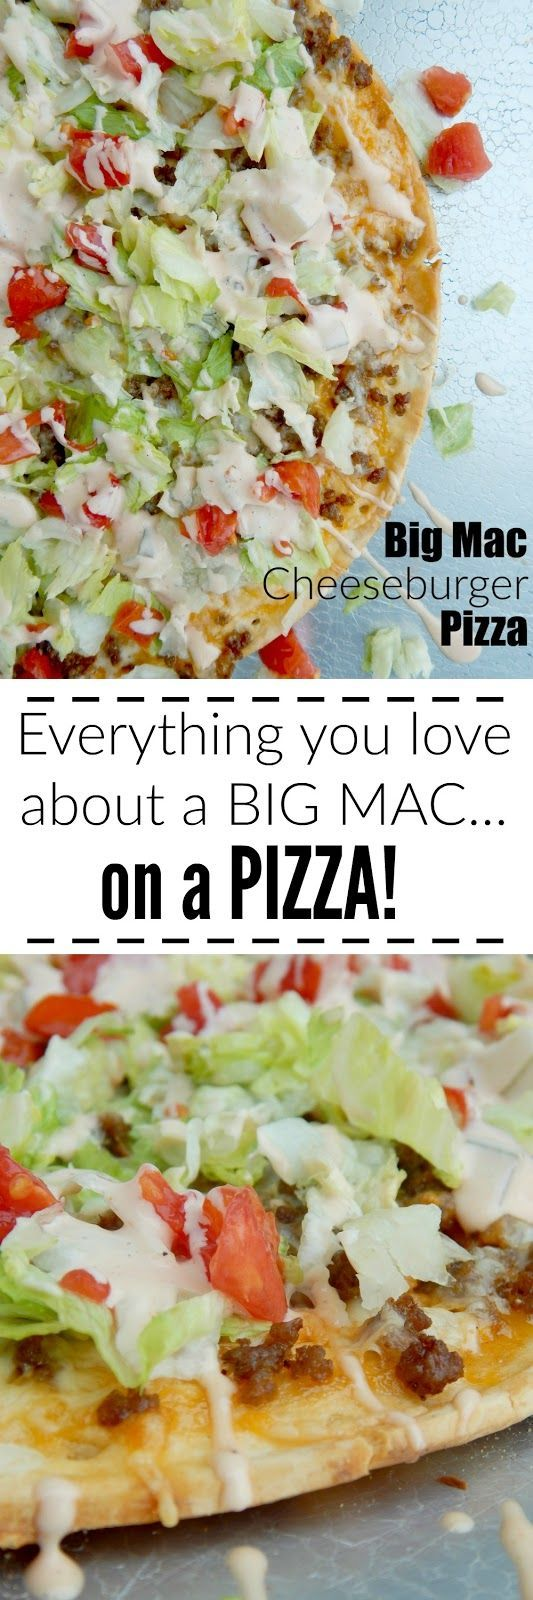 Big Mac Cheeseburger Pizza...the combination of everyone's two favorites burgers + pizza!